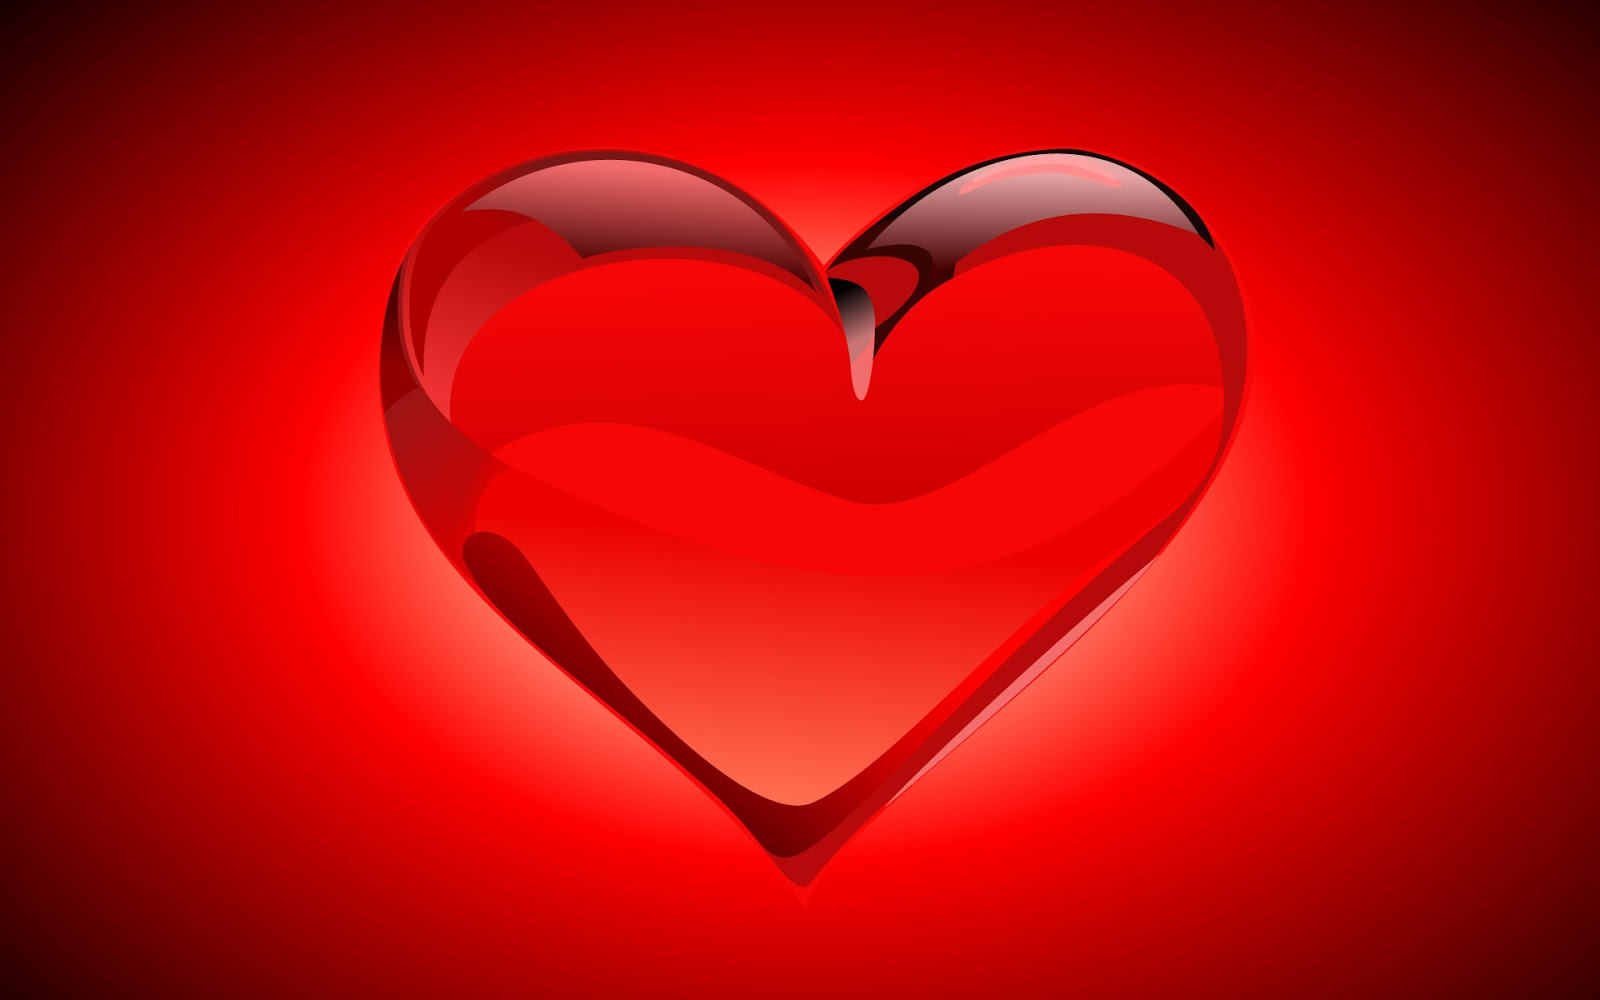 Heart Images Wallpapers 019